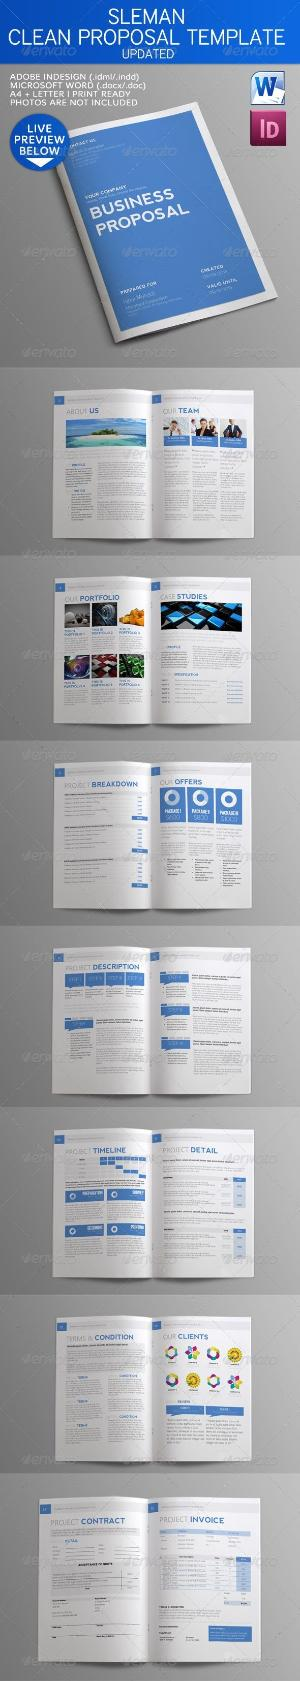 Sleman Clean Proposal Template  Graphicriver Item For Sale By